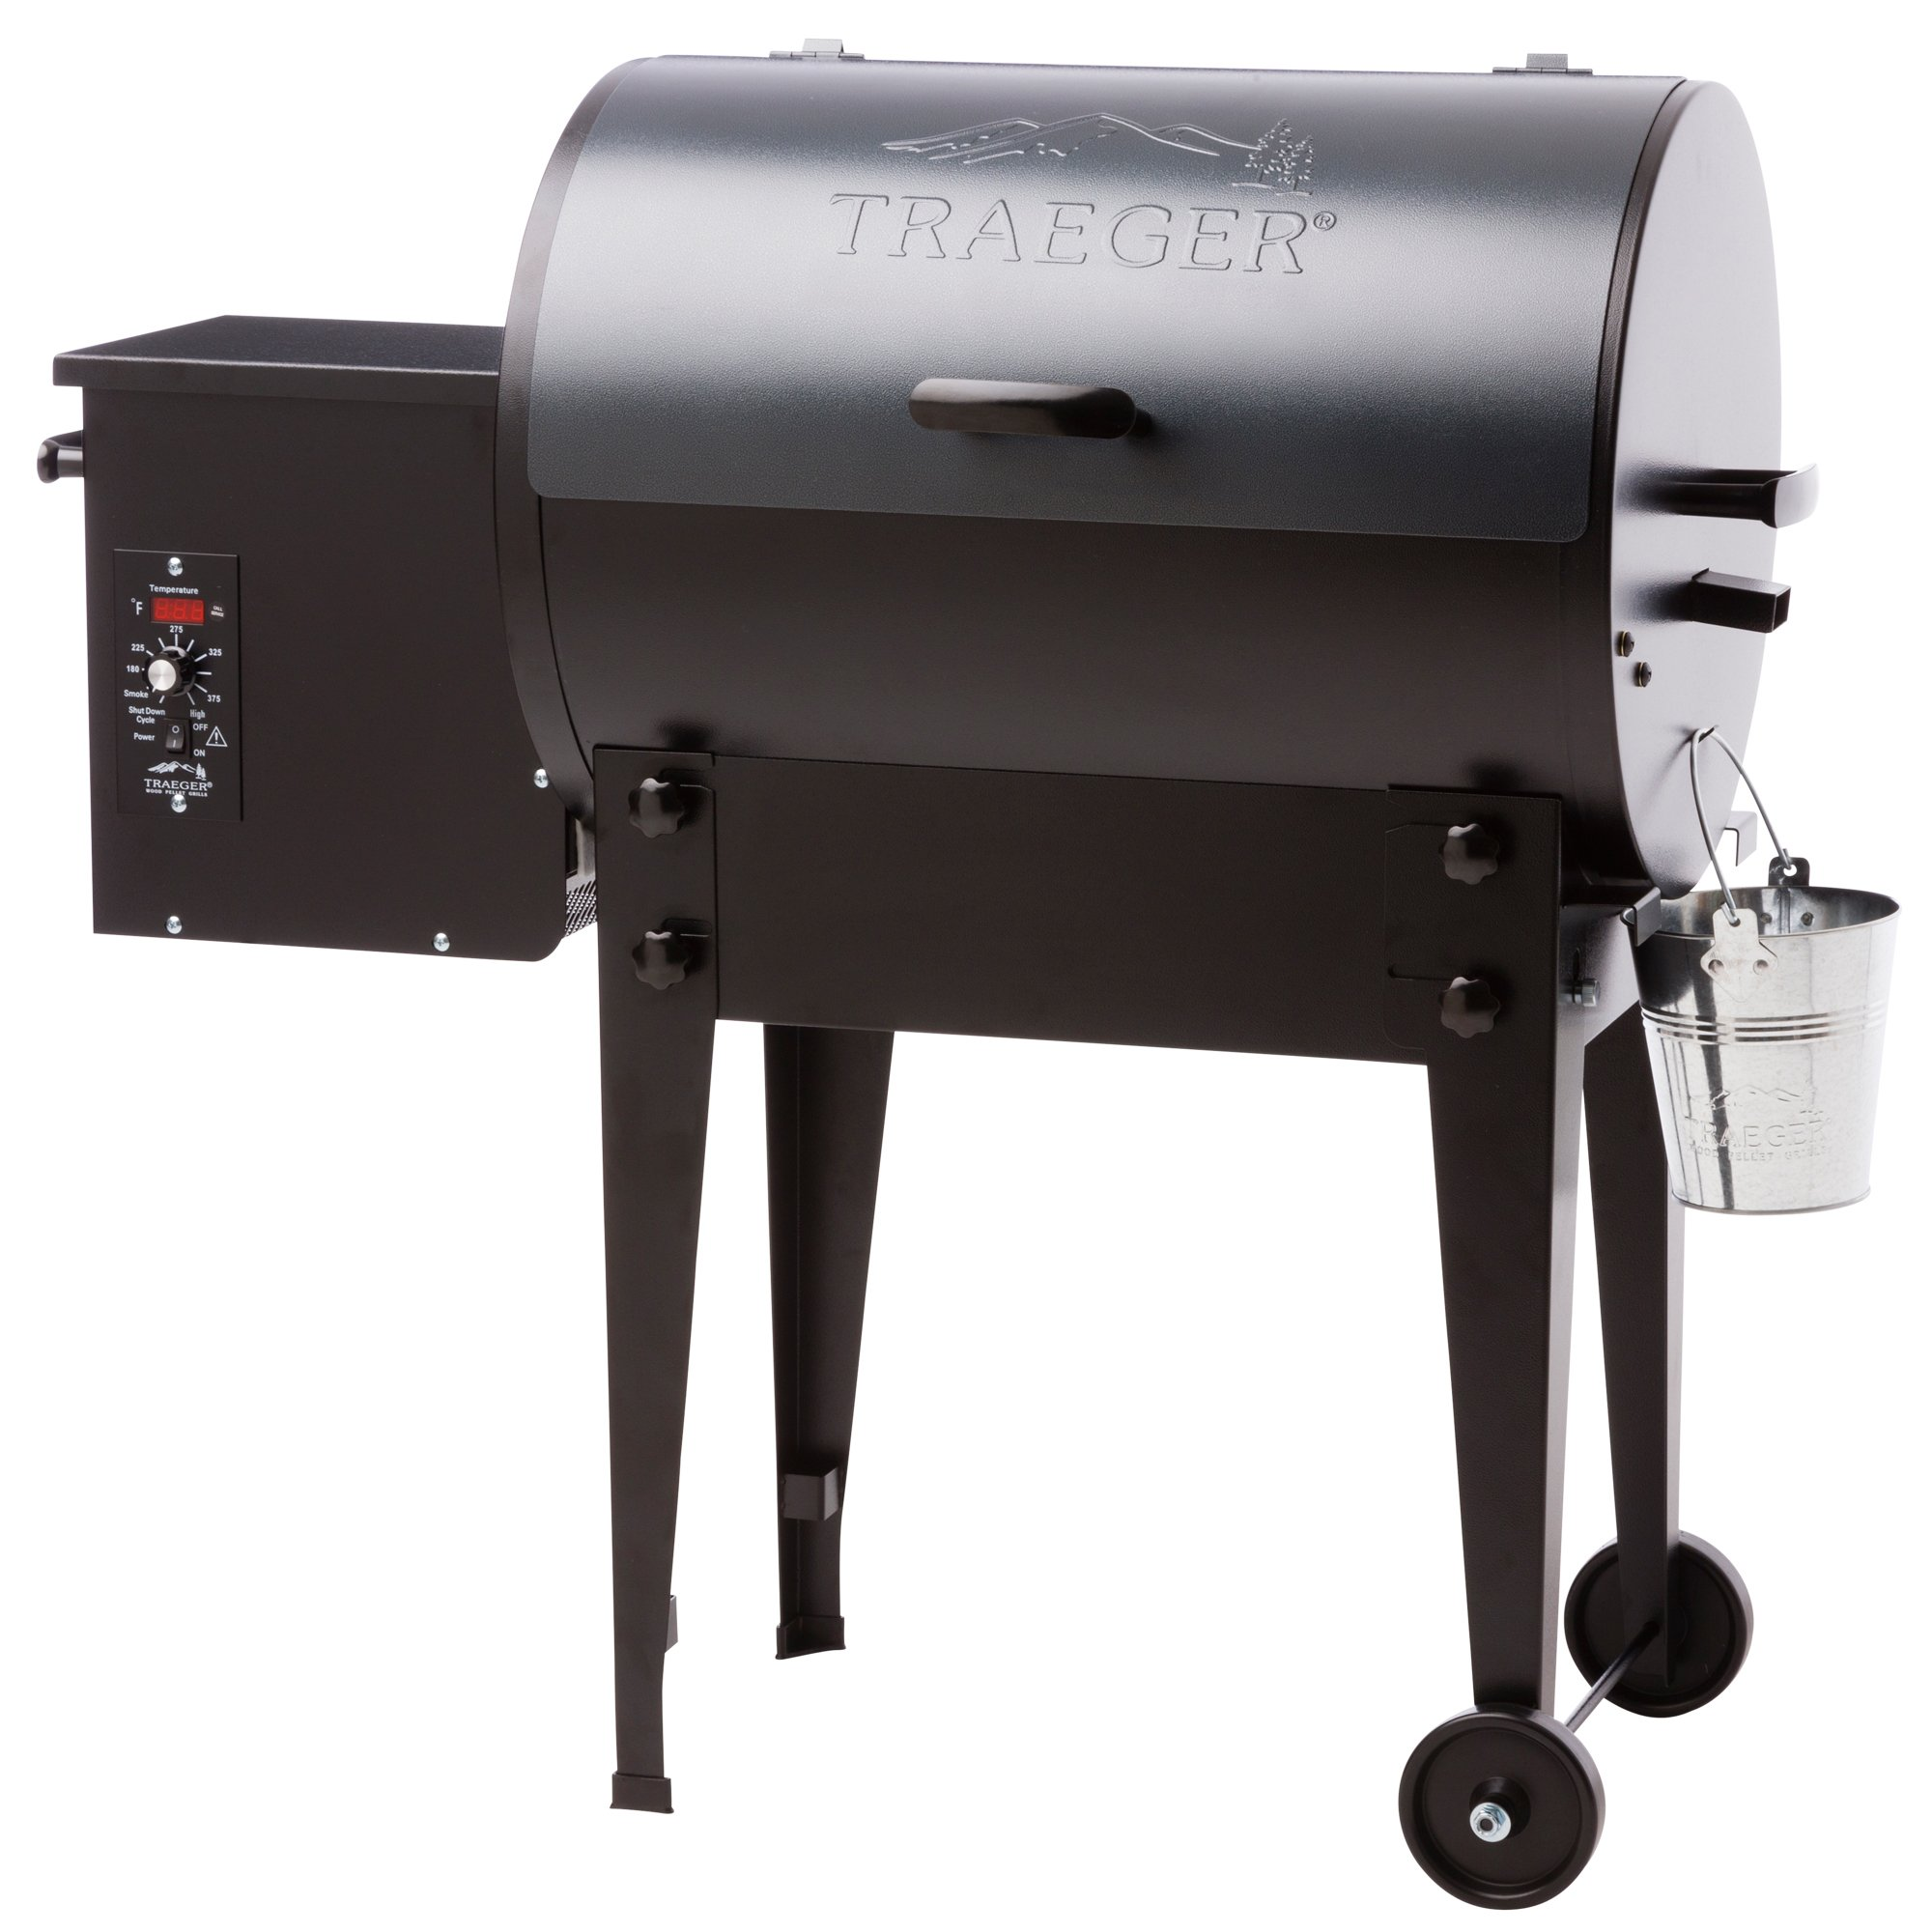 Traeger Grills Tailgater 20 Portable Wood Pellet Grill and Smoker - Grill, Smoke, Bake, Roast, Braise, and BBQ (Blue)